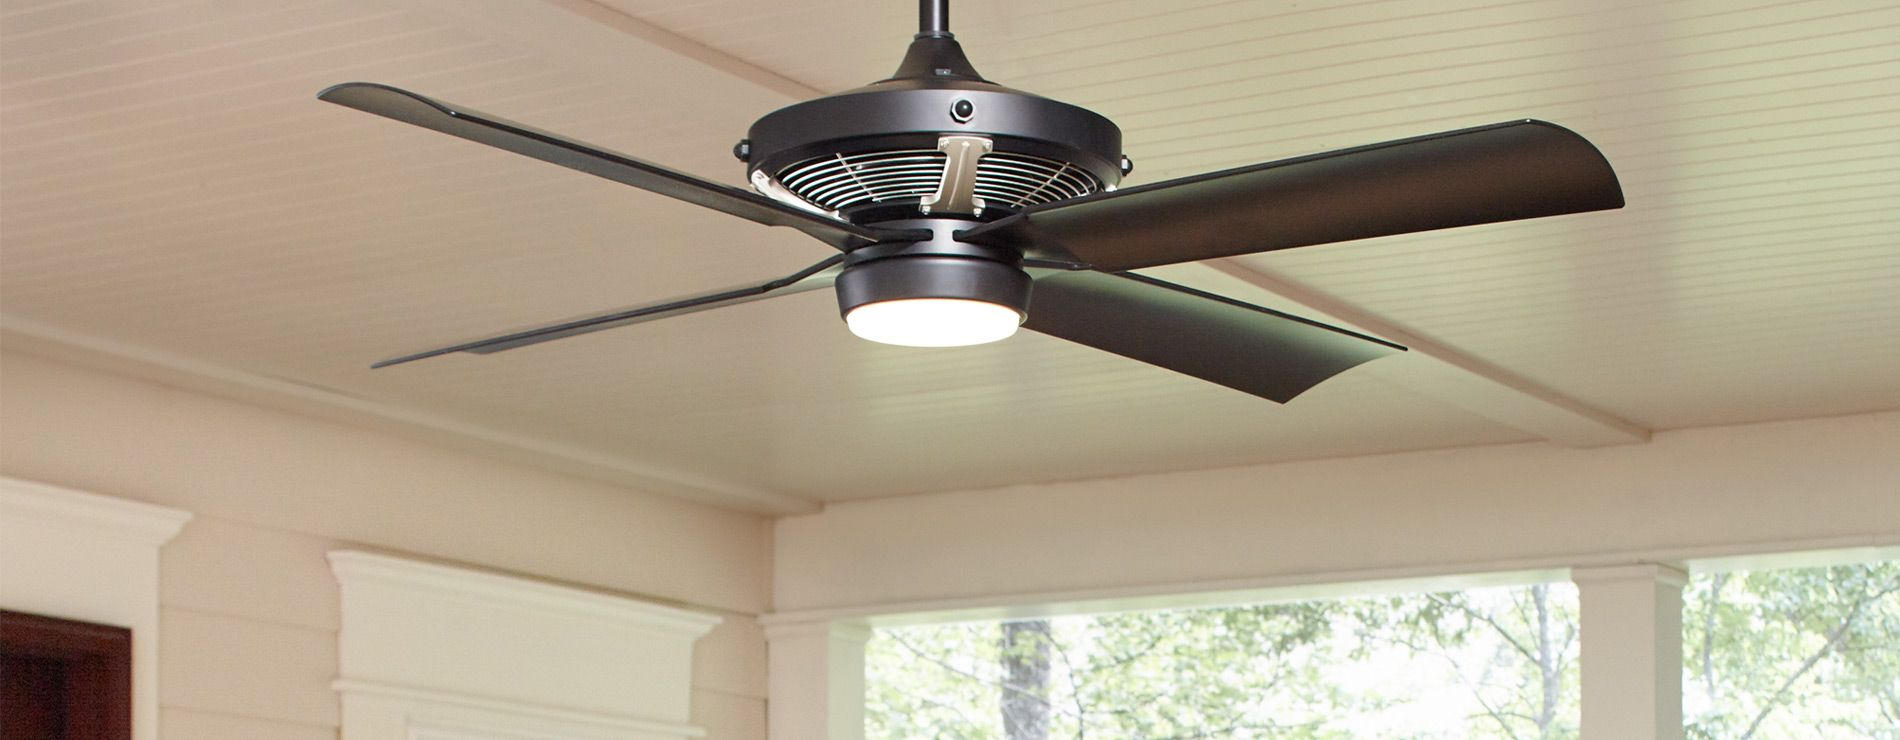 Southwestern ceiling fans hbm blog southwestern ceiling fans index the southwest source what to remember mozeypictures